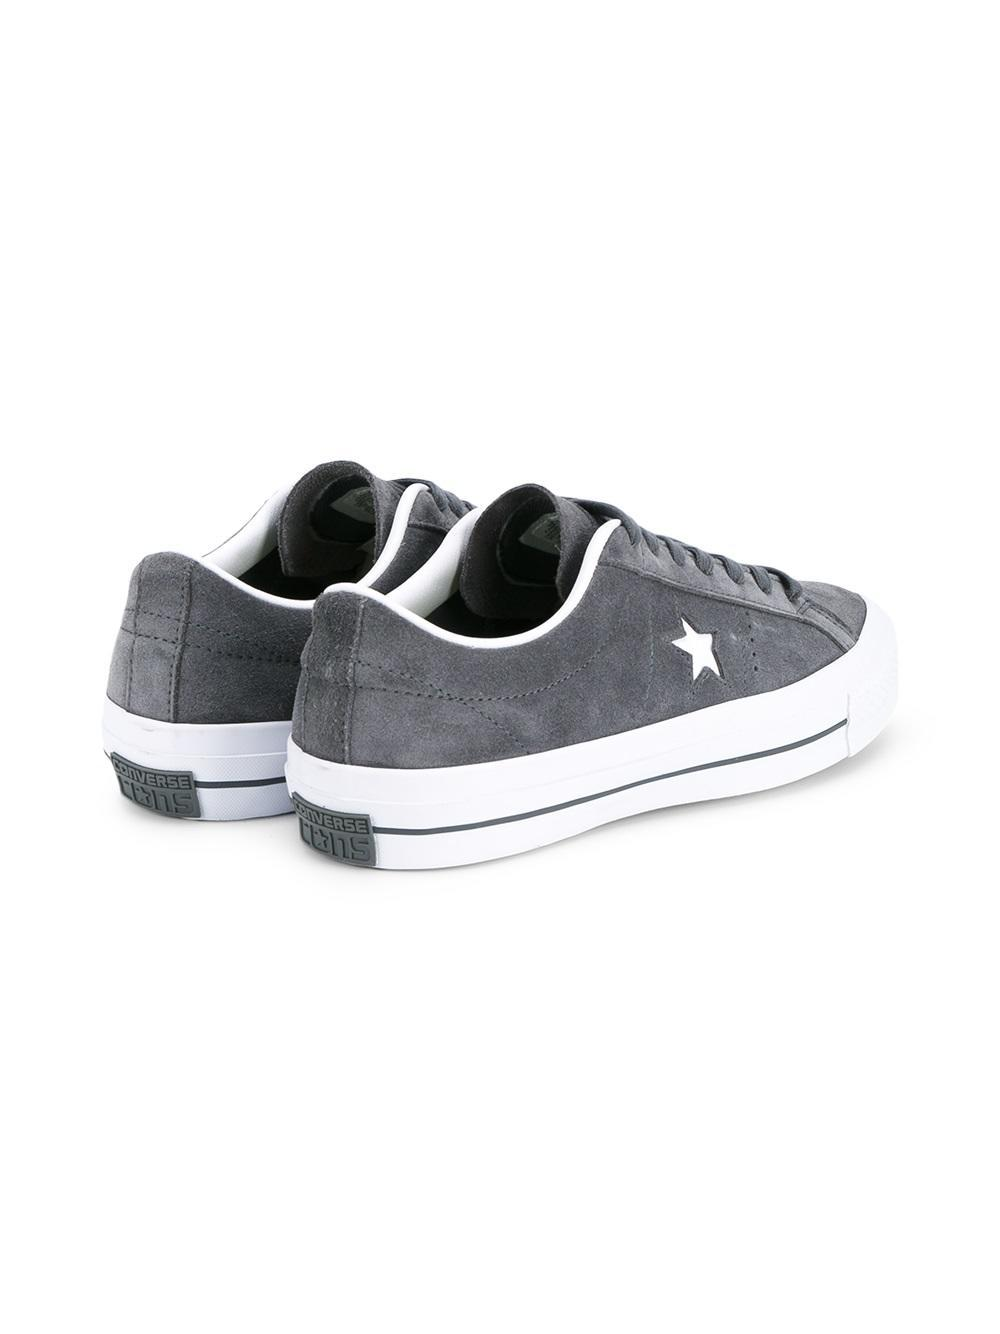 Converse Classic Low Top Sneakers In Gray For Men Lyst